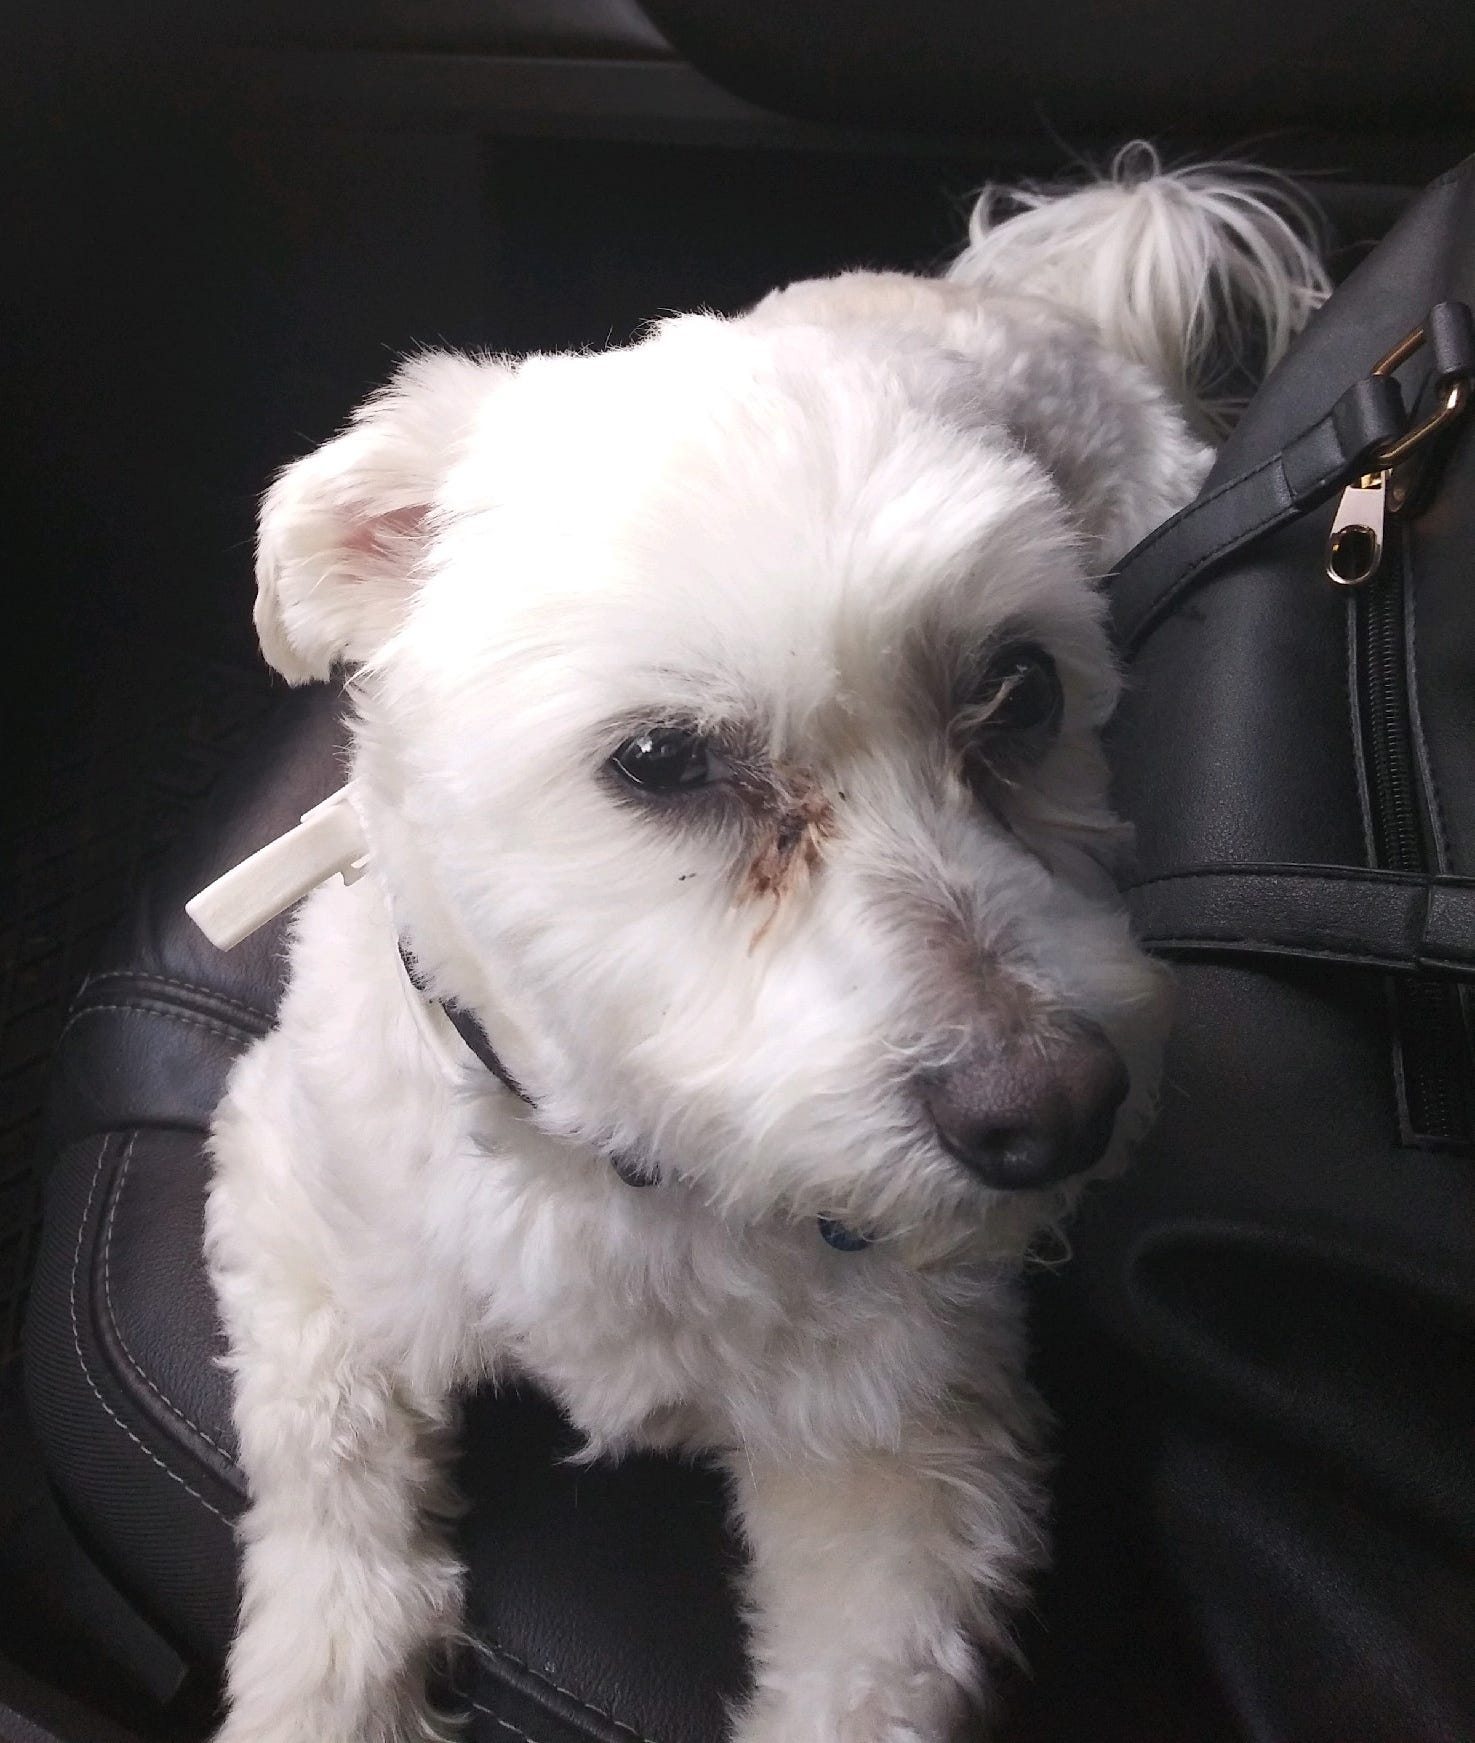 An ownership dispute over this Maltese named Jake finally ended with the dog being returned to the woman that his microchip was registered to, despite the lack of microchip laws in Tennessee.